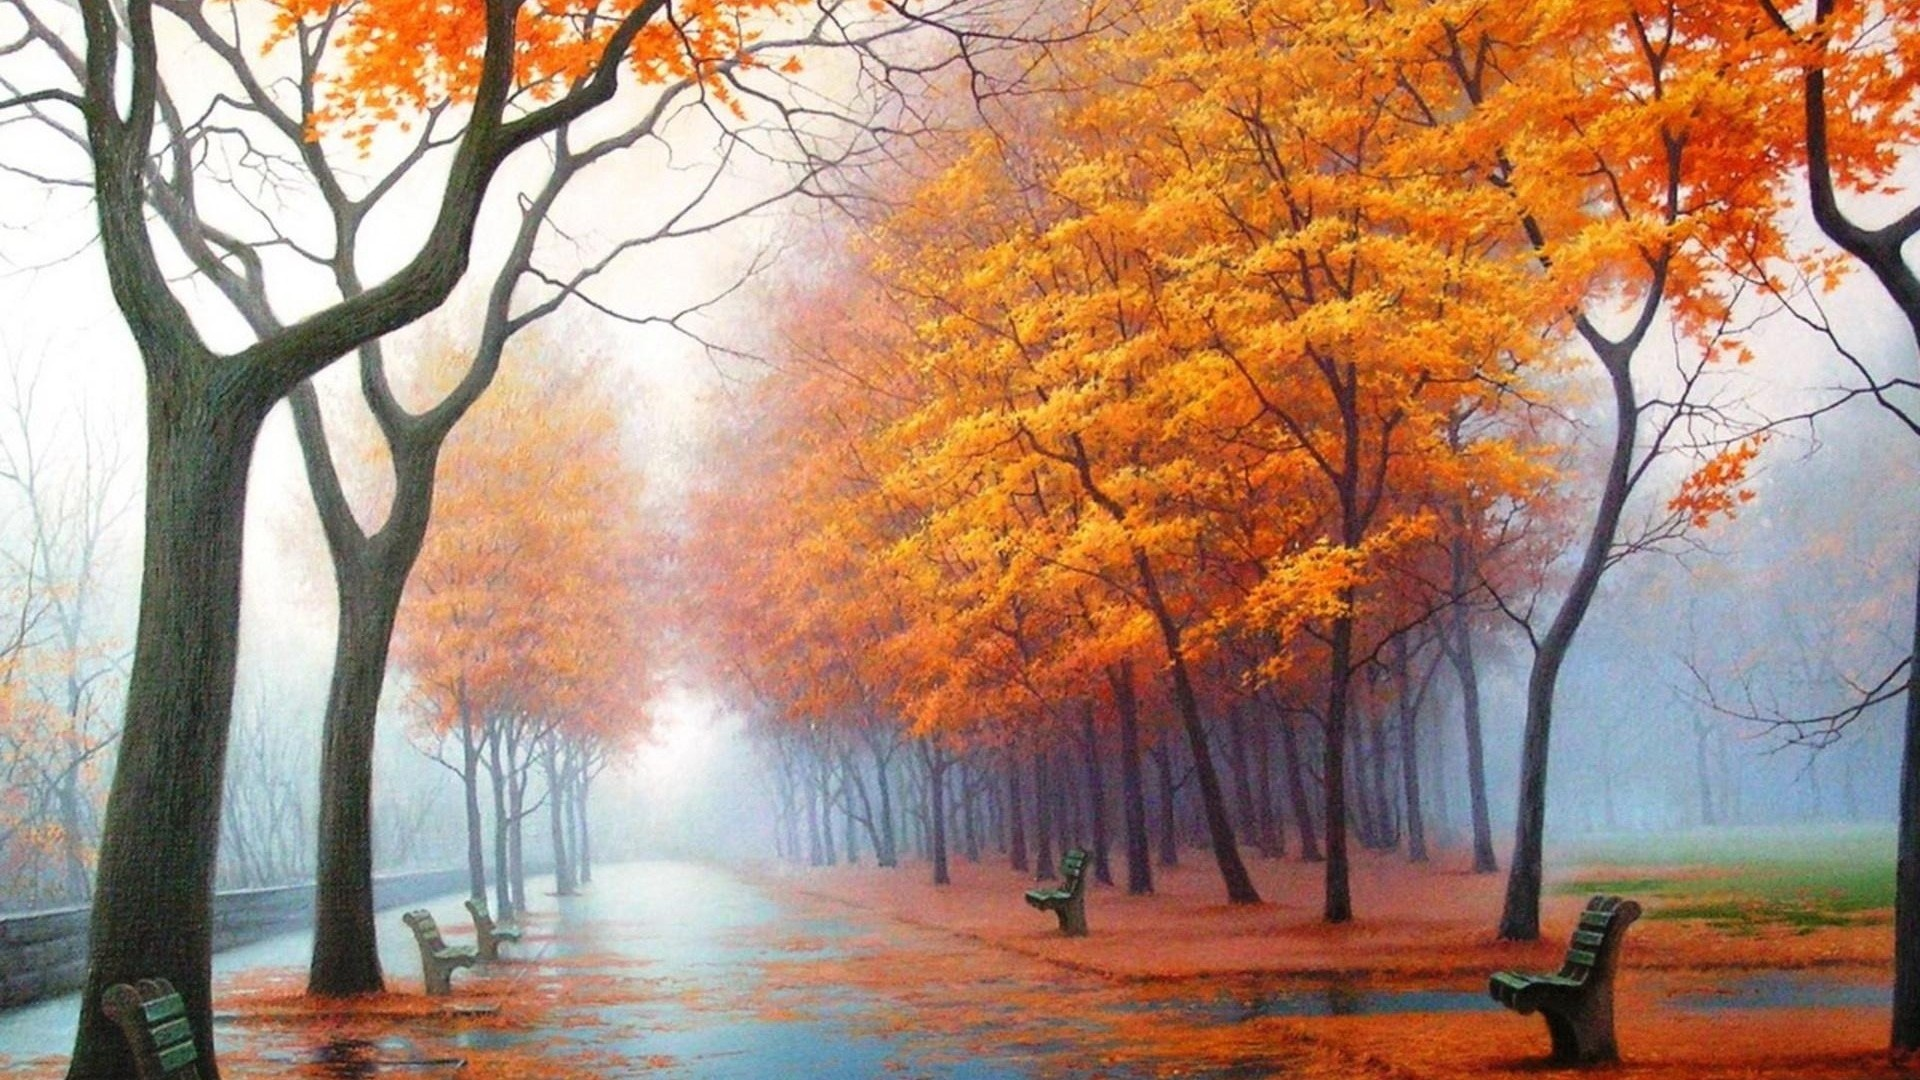 1920x1080 Preview wallpaper autumn, park, avenue, benches, trees, leaf fall, fog